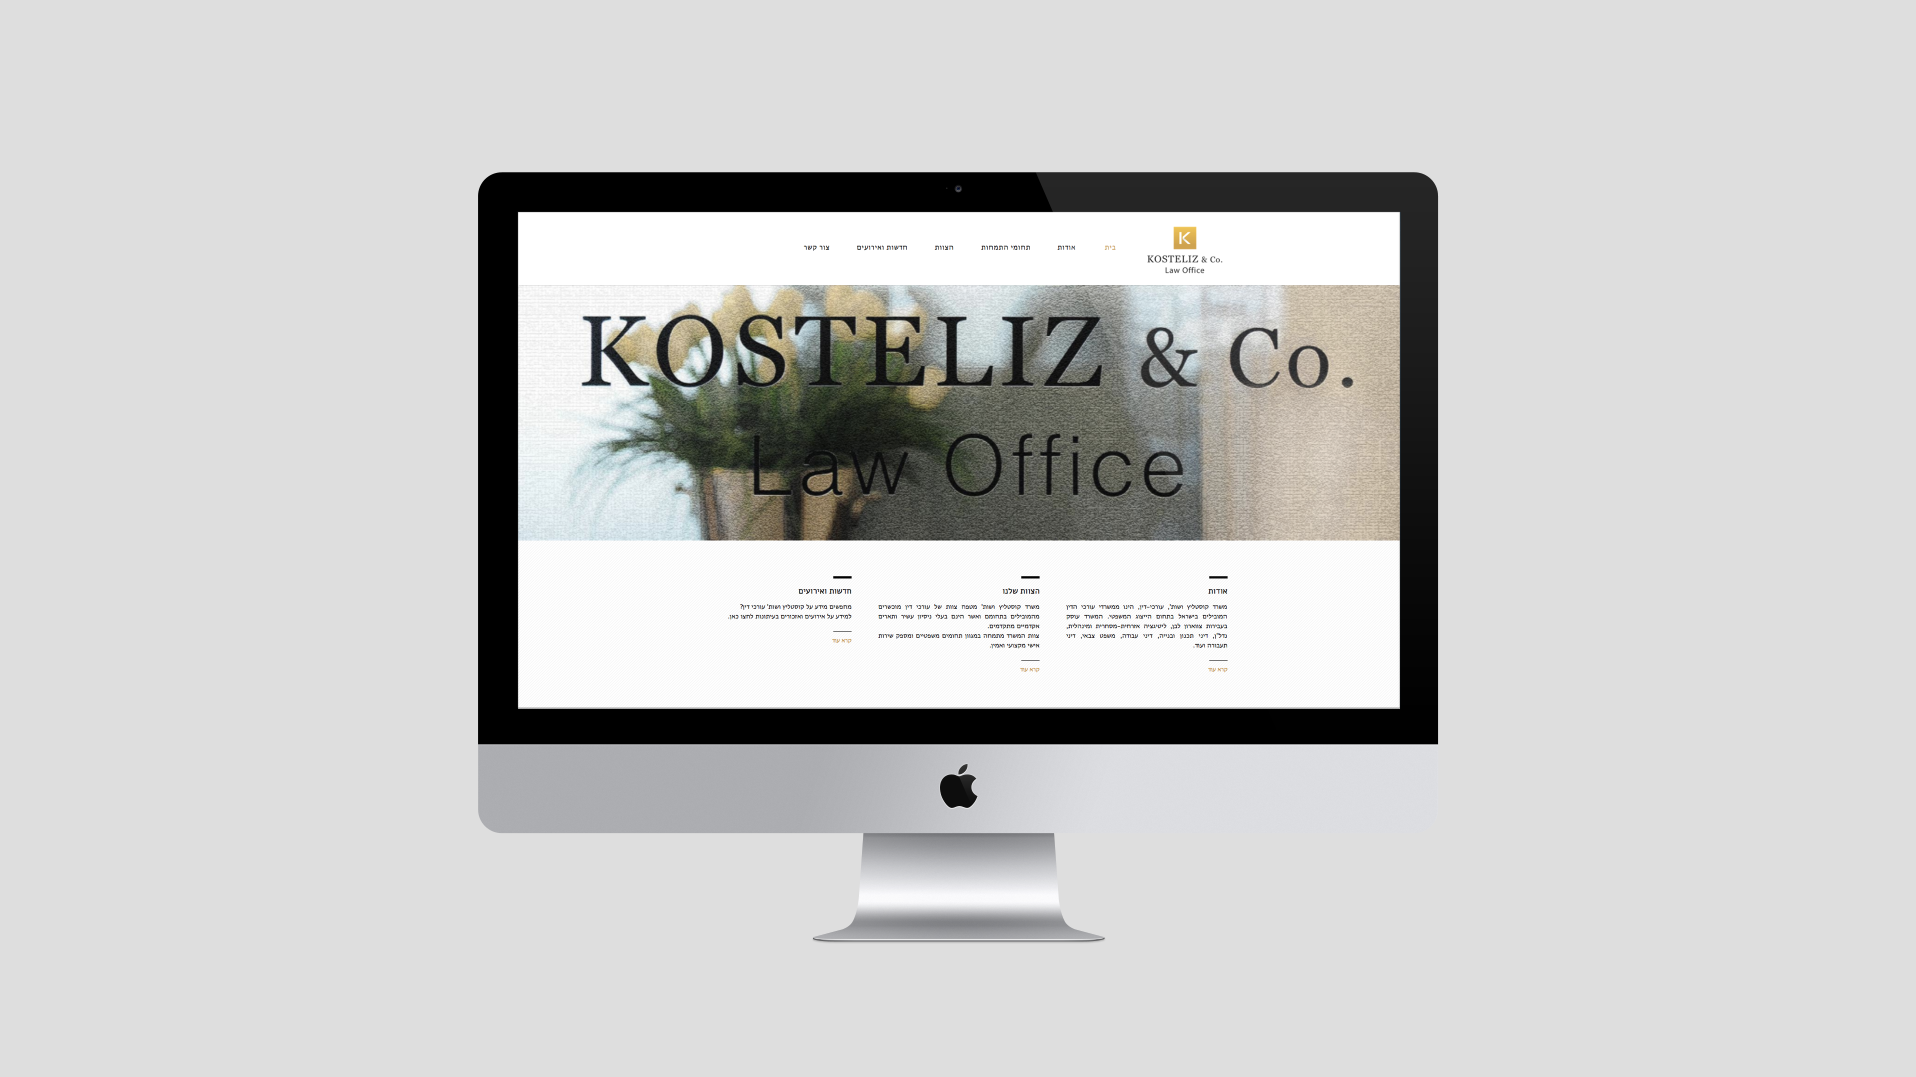 Mac 3 1916x1077 - Kostelitz & Co